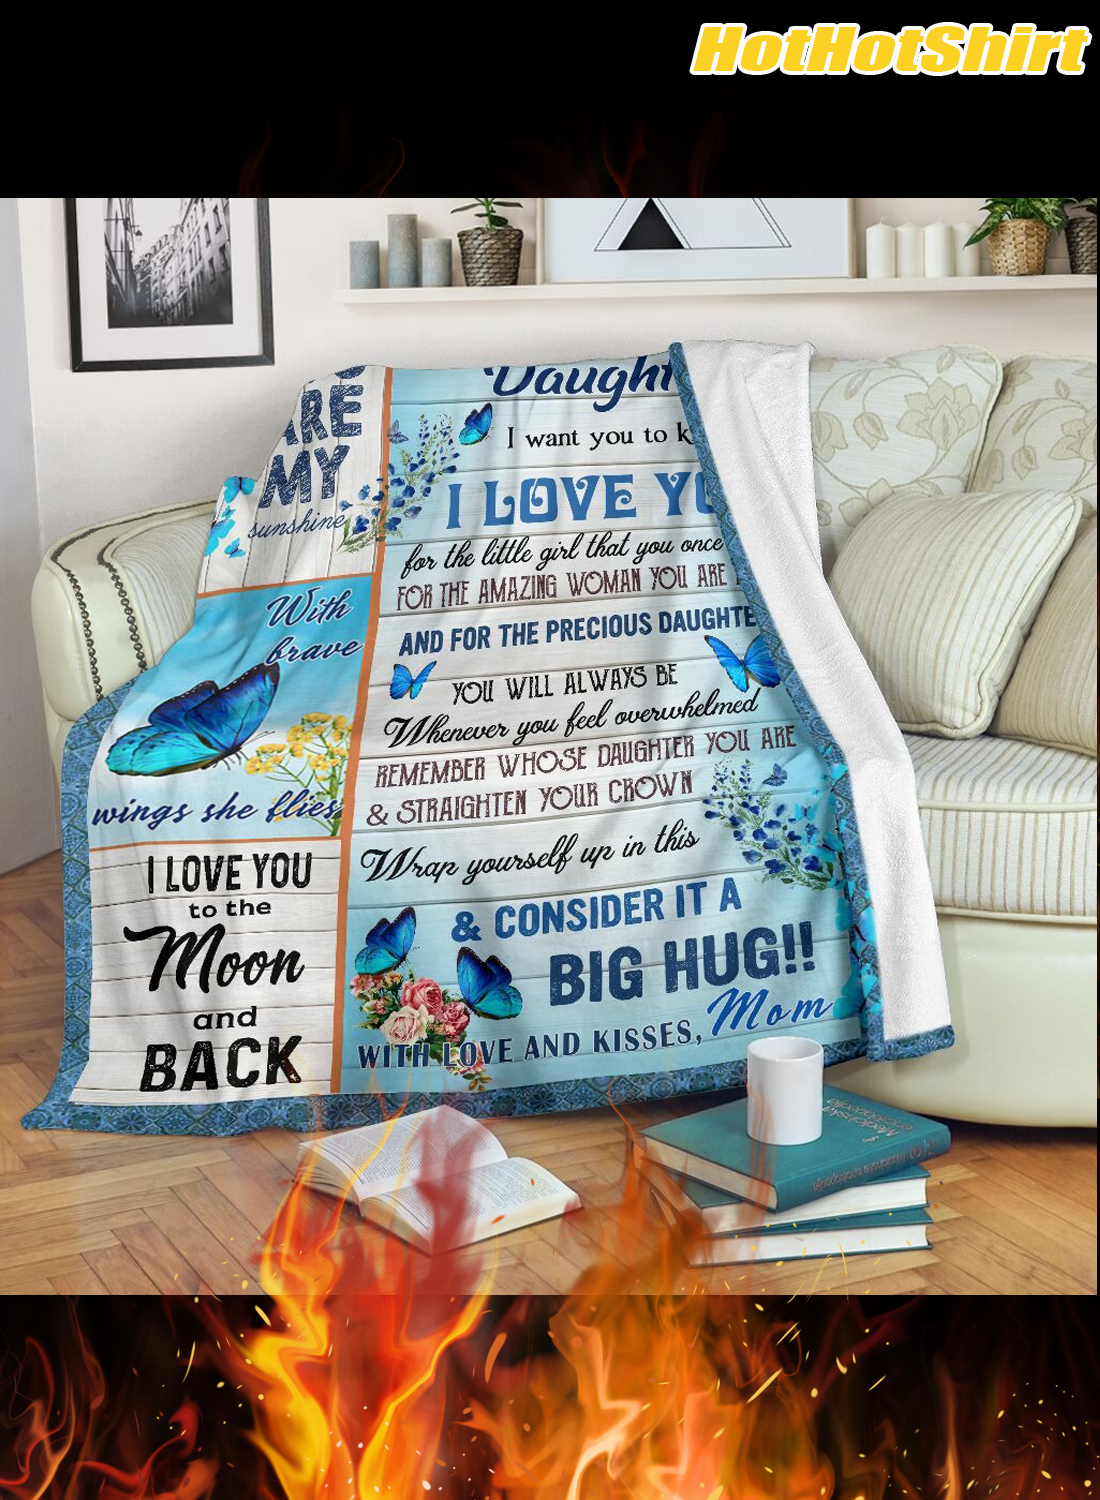 Butterfly to my daughter i want you to know i love you your mom blanket 1